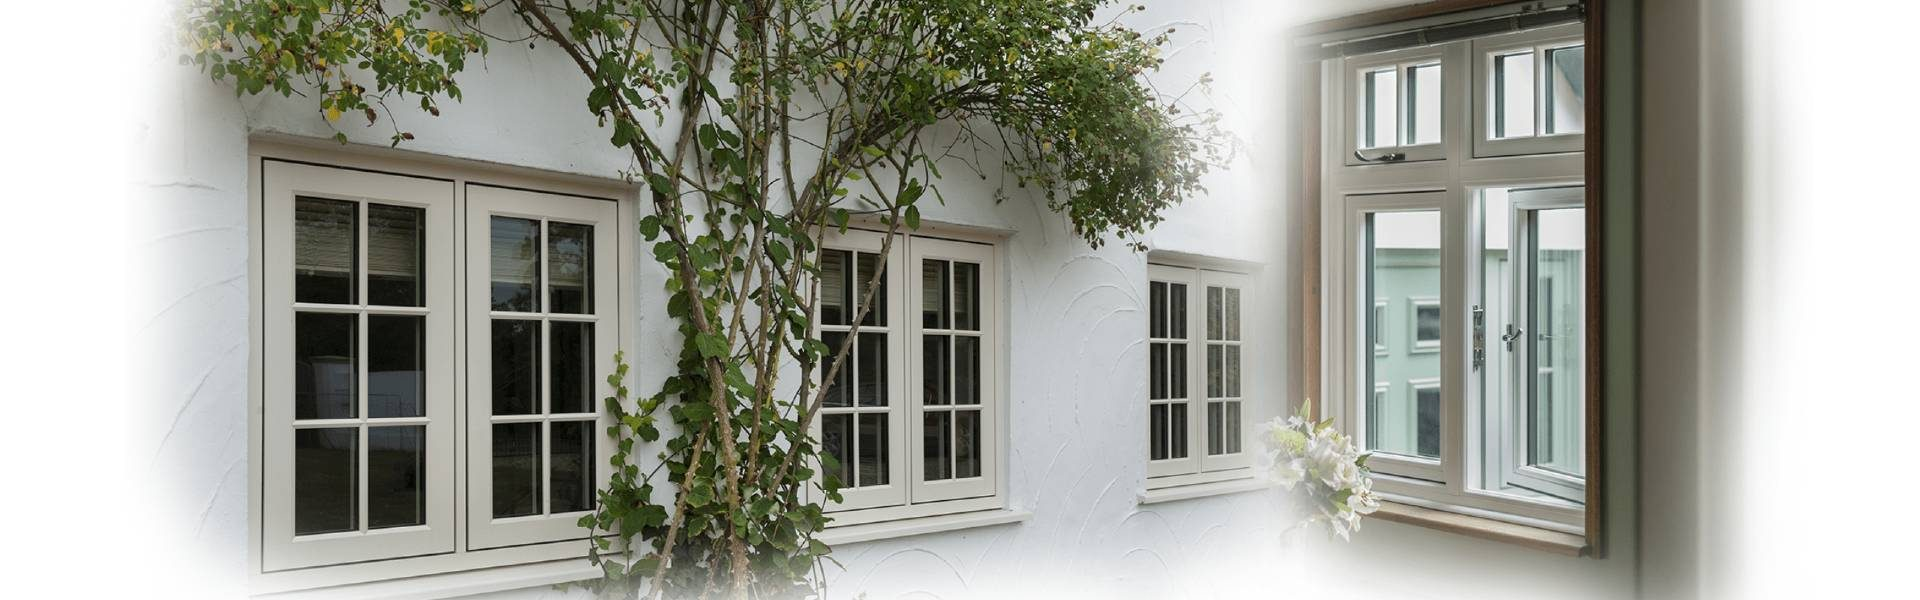 Double Glazing in Wiltshire